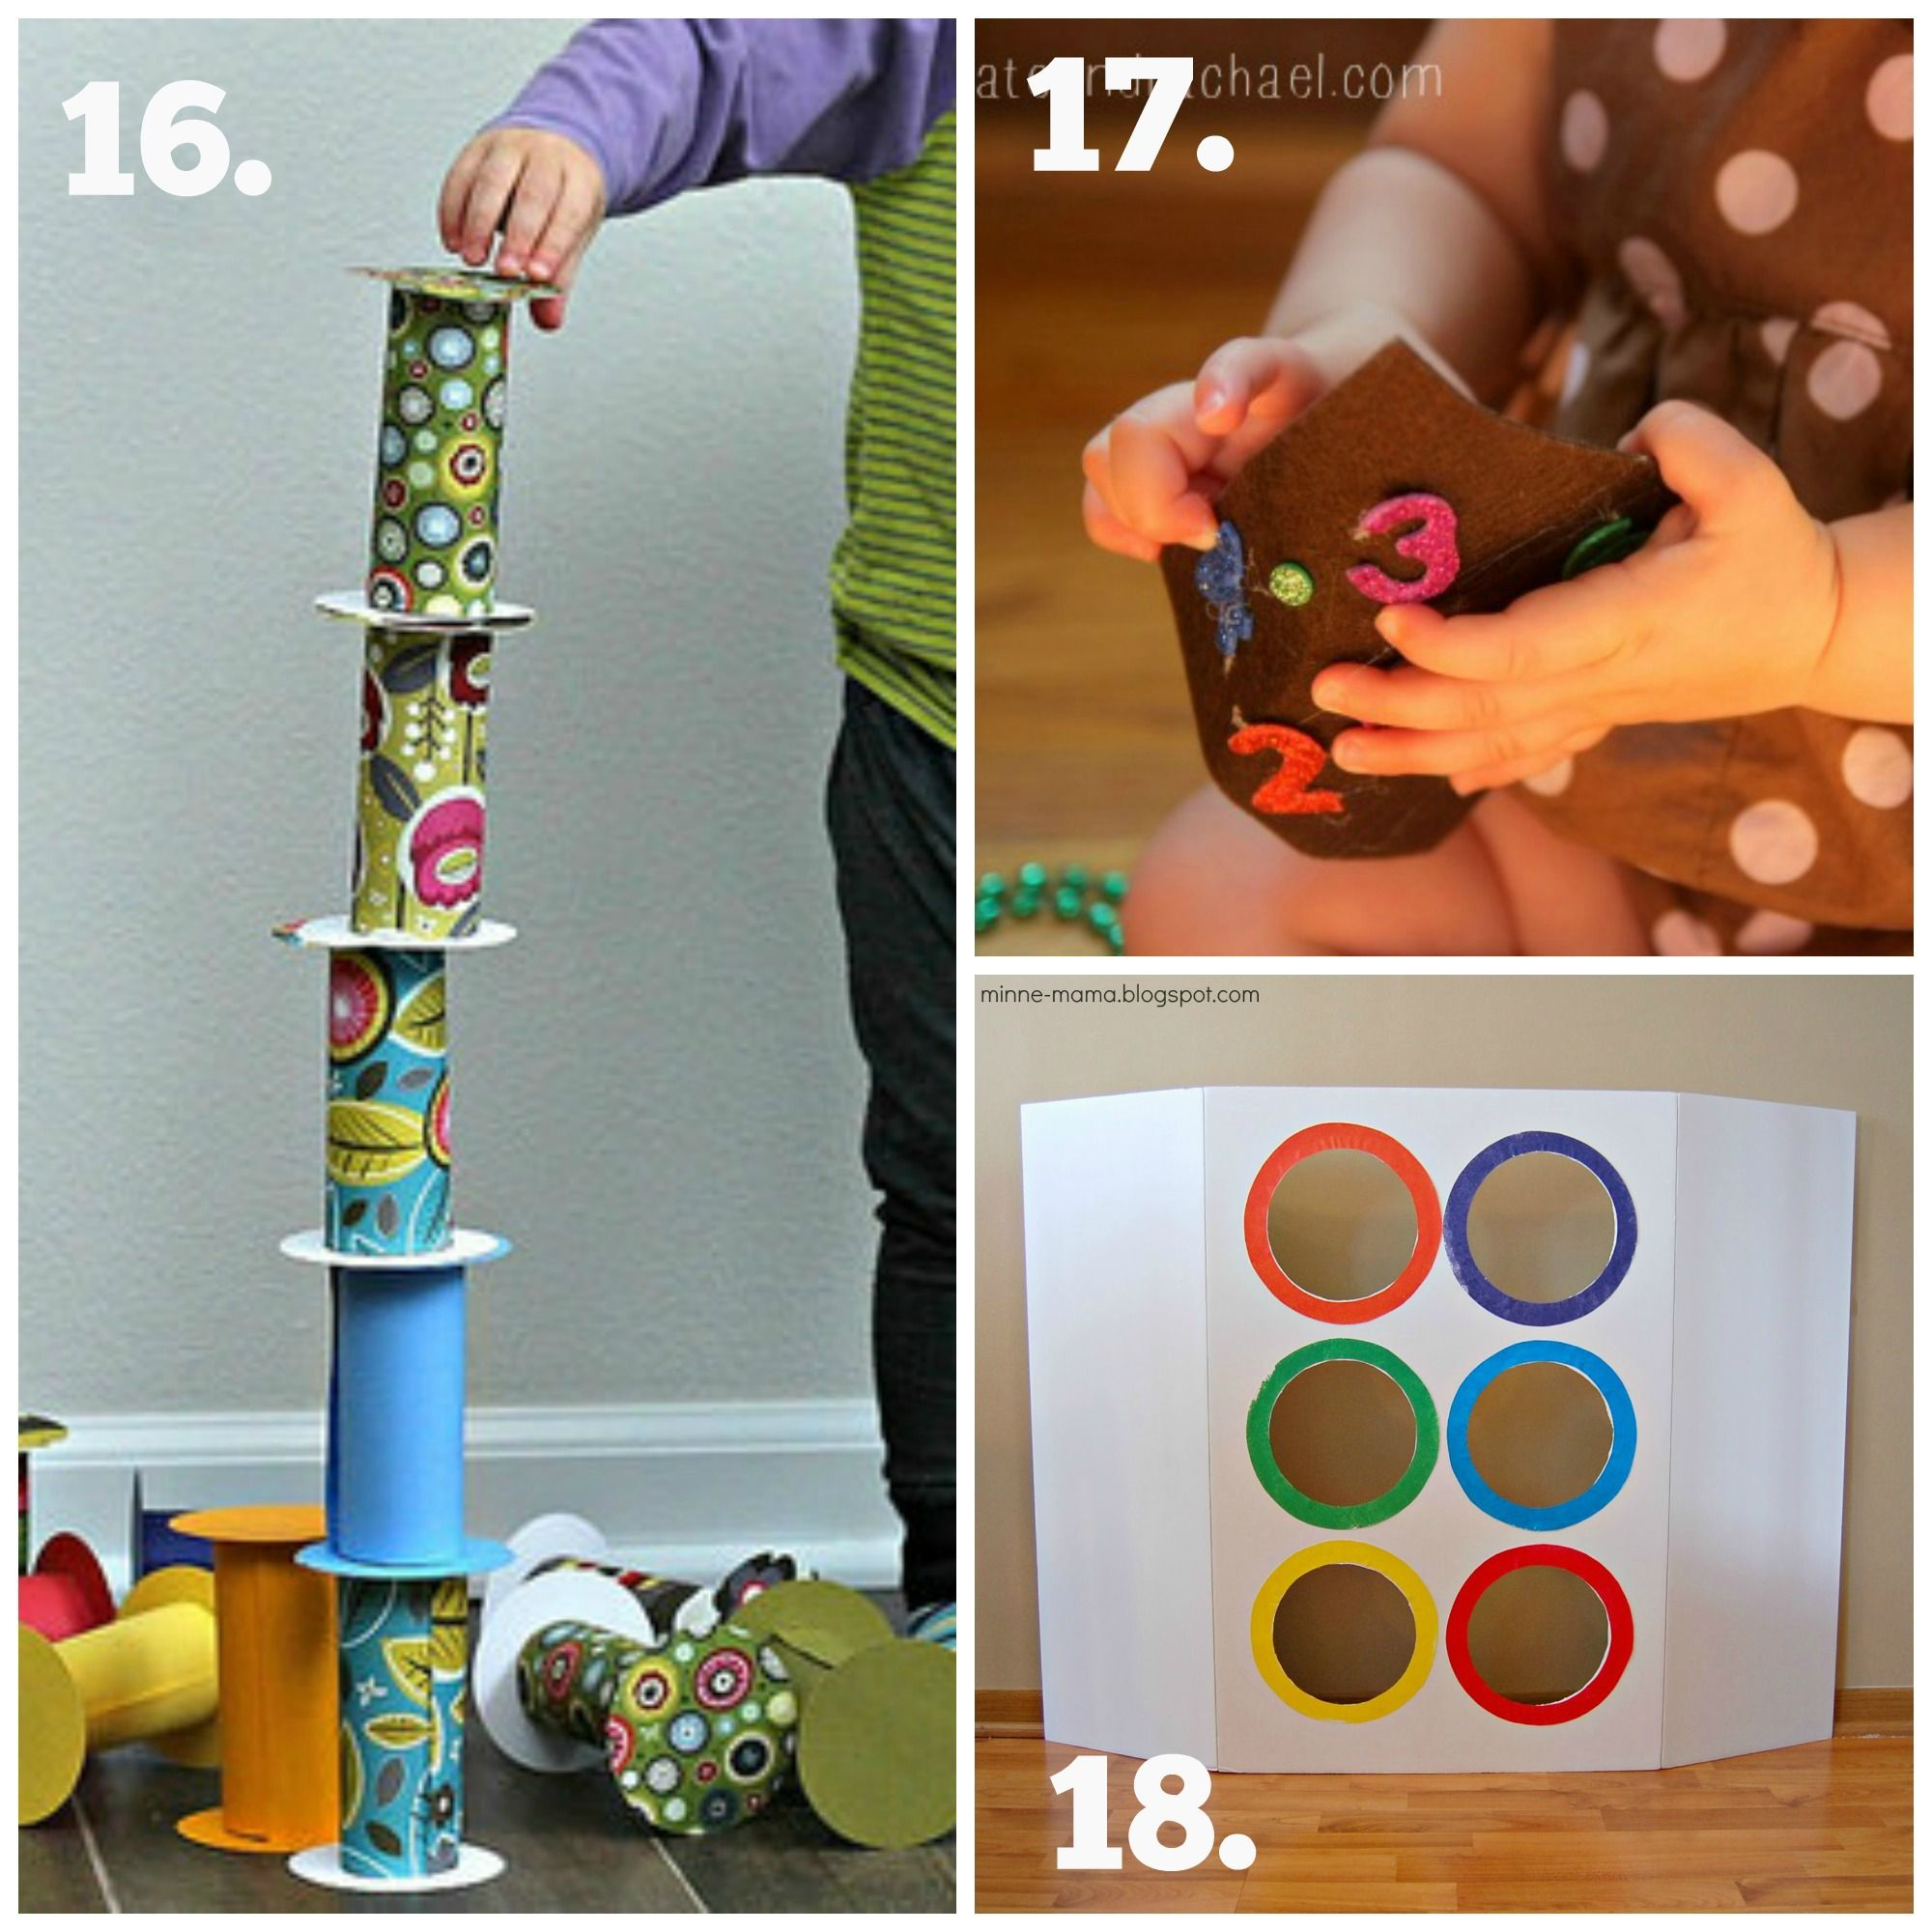 Recycled Play Series - Diy Baby  Toddler Toys  April -9009